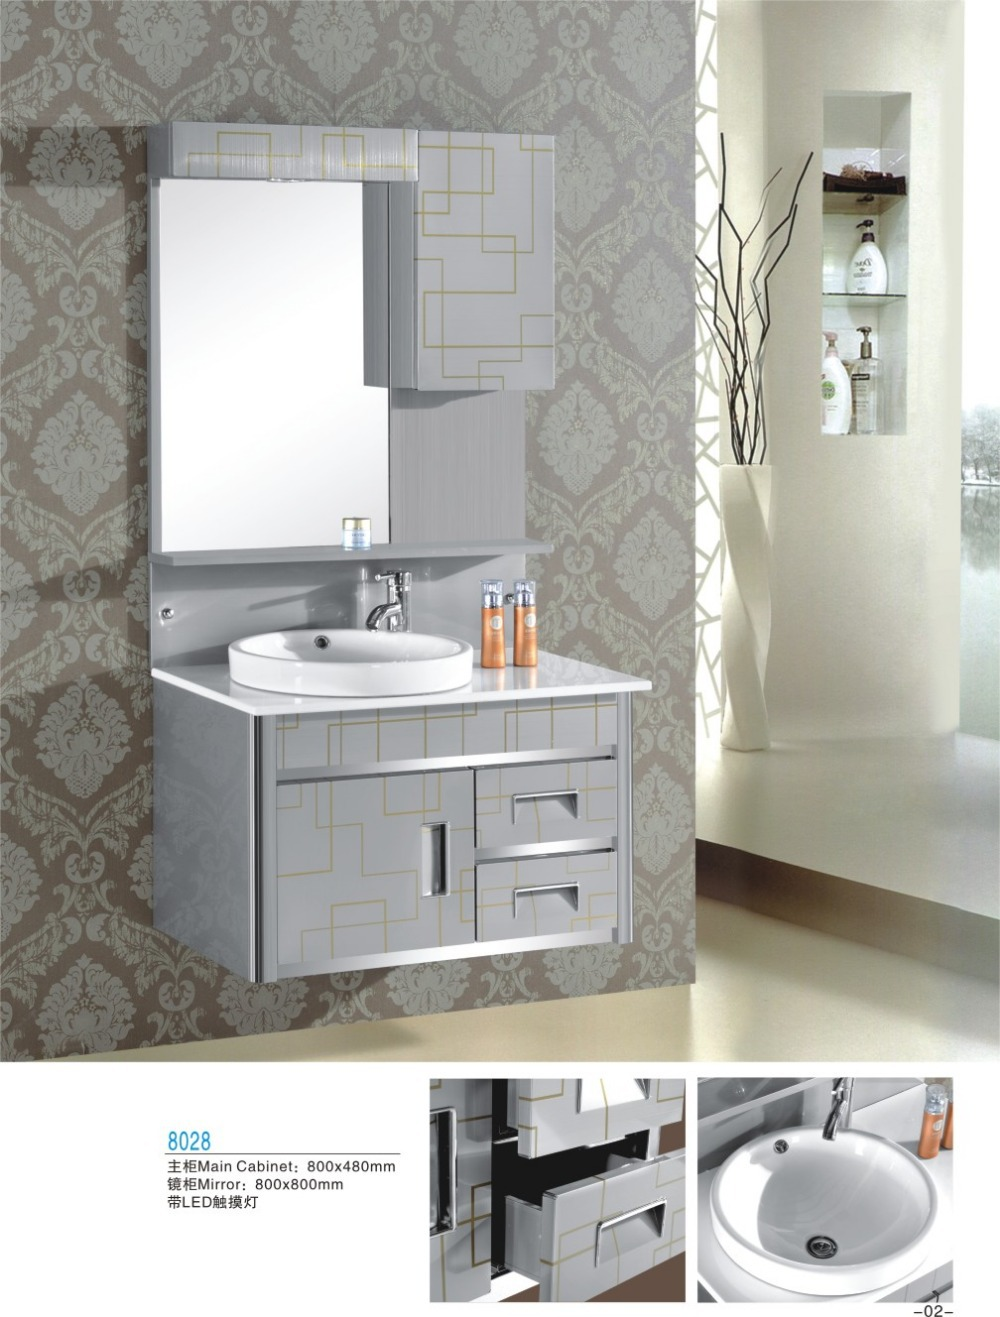 mounted stainless steel bathroom cabinet 8028 with mirrored cabinet